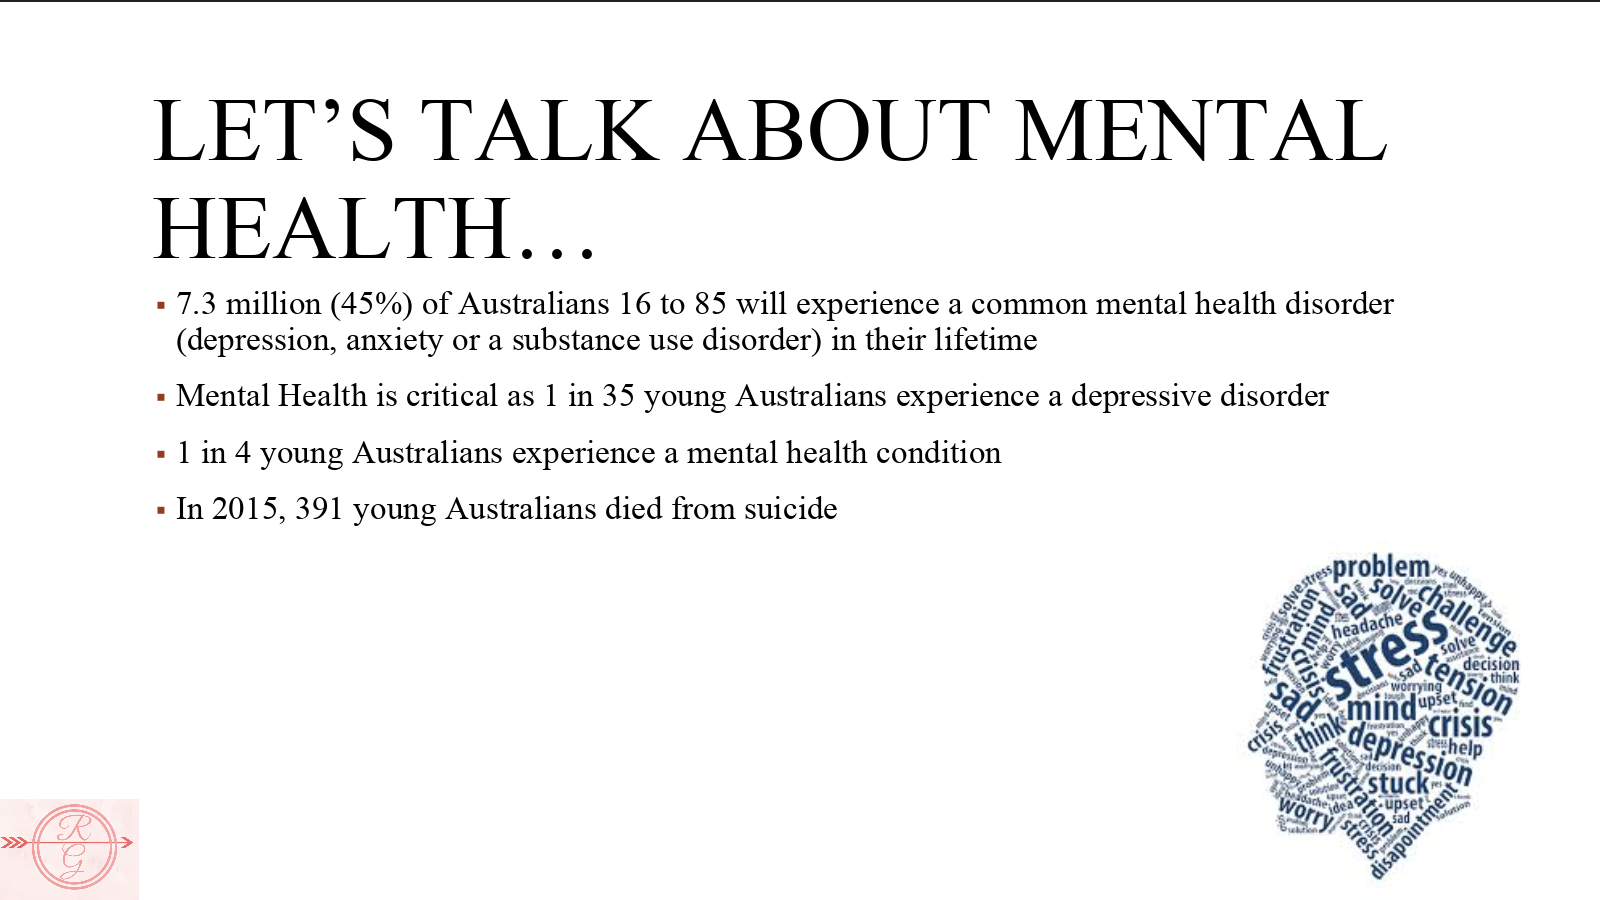 A slide showing the concerning statistics around mental health amongst young people in Australia. It is a significant problem.